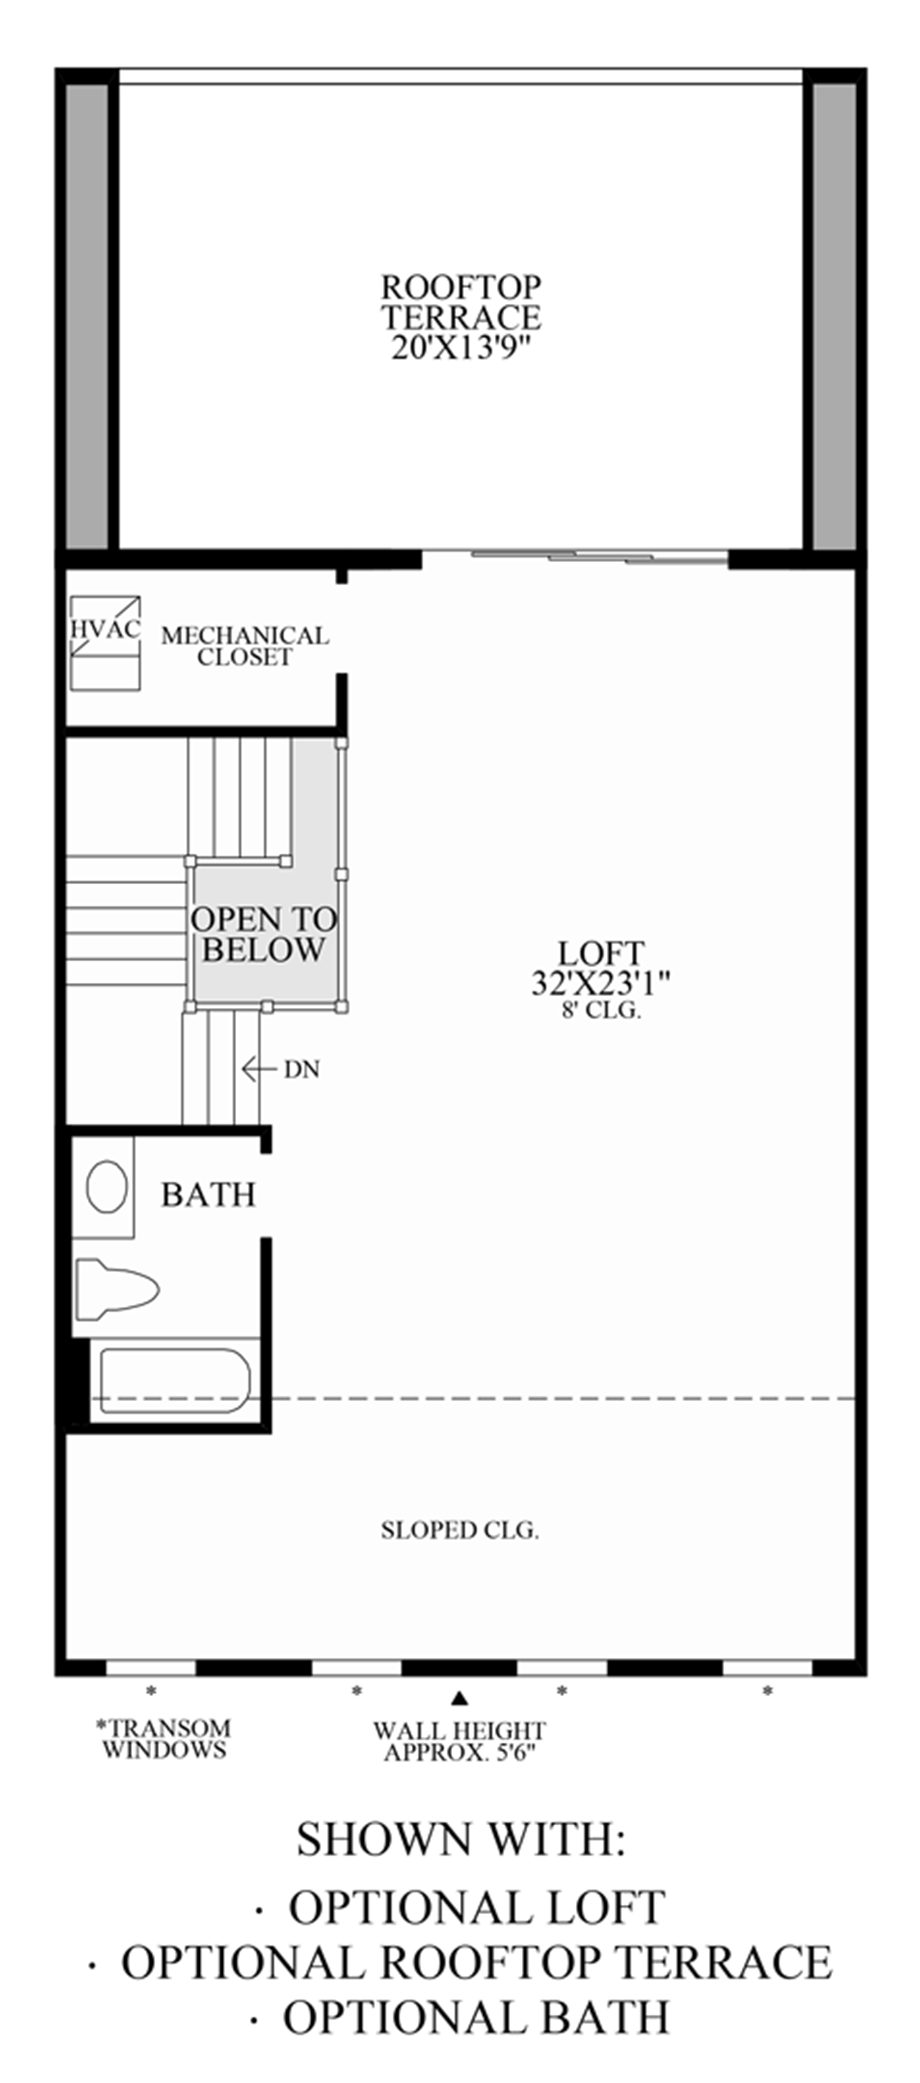 Optional Loft, Rooftop Terrace & Bath Floor Plan